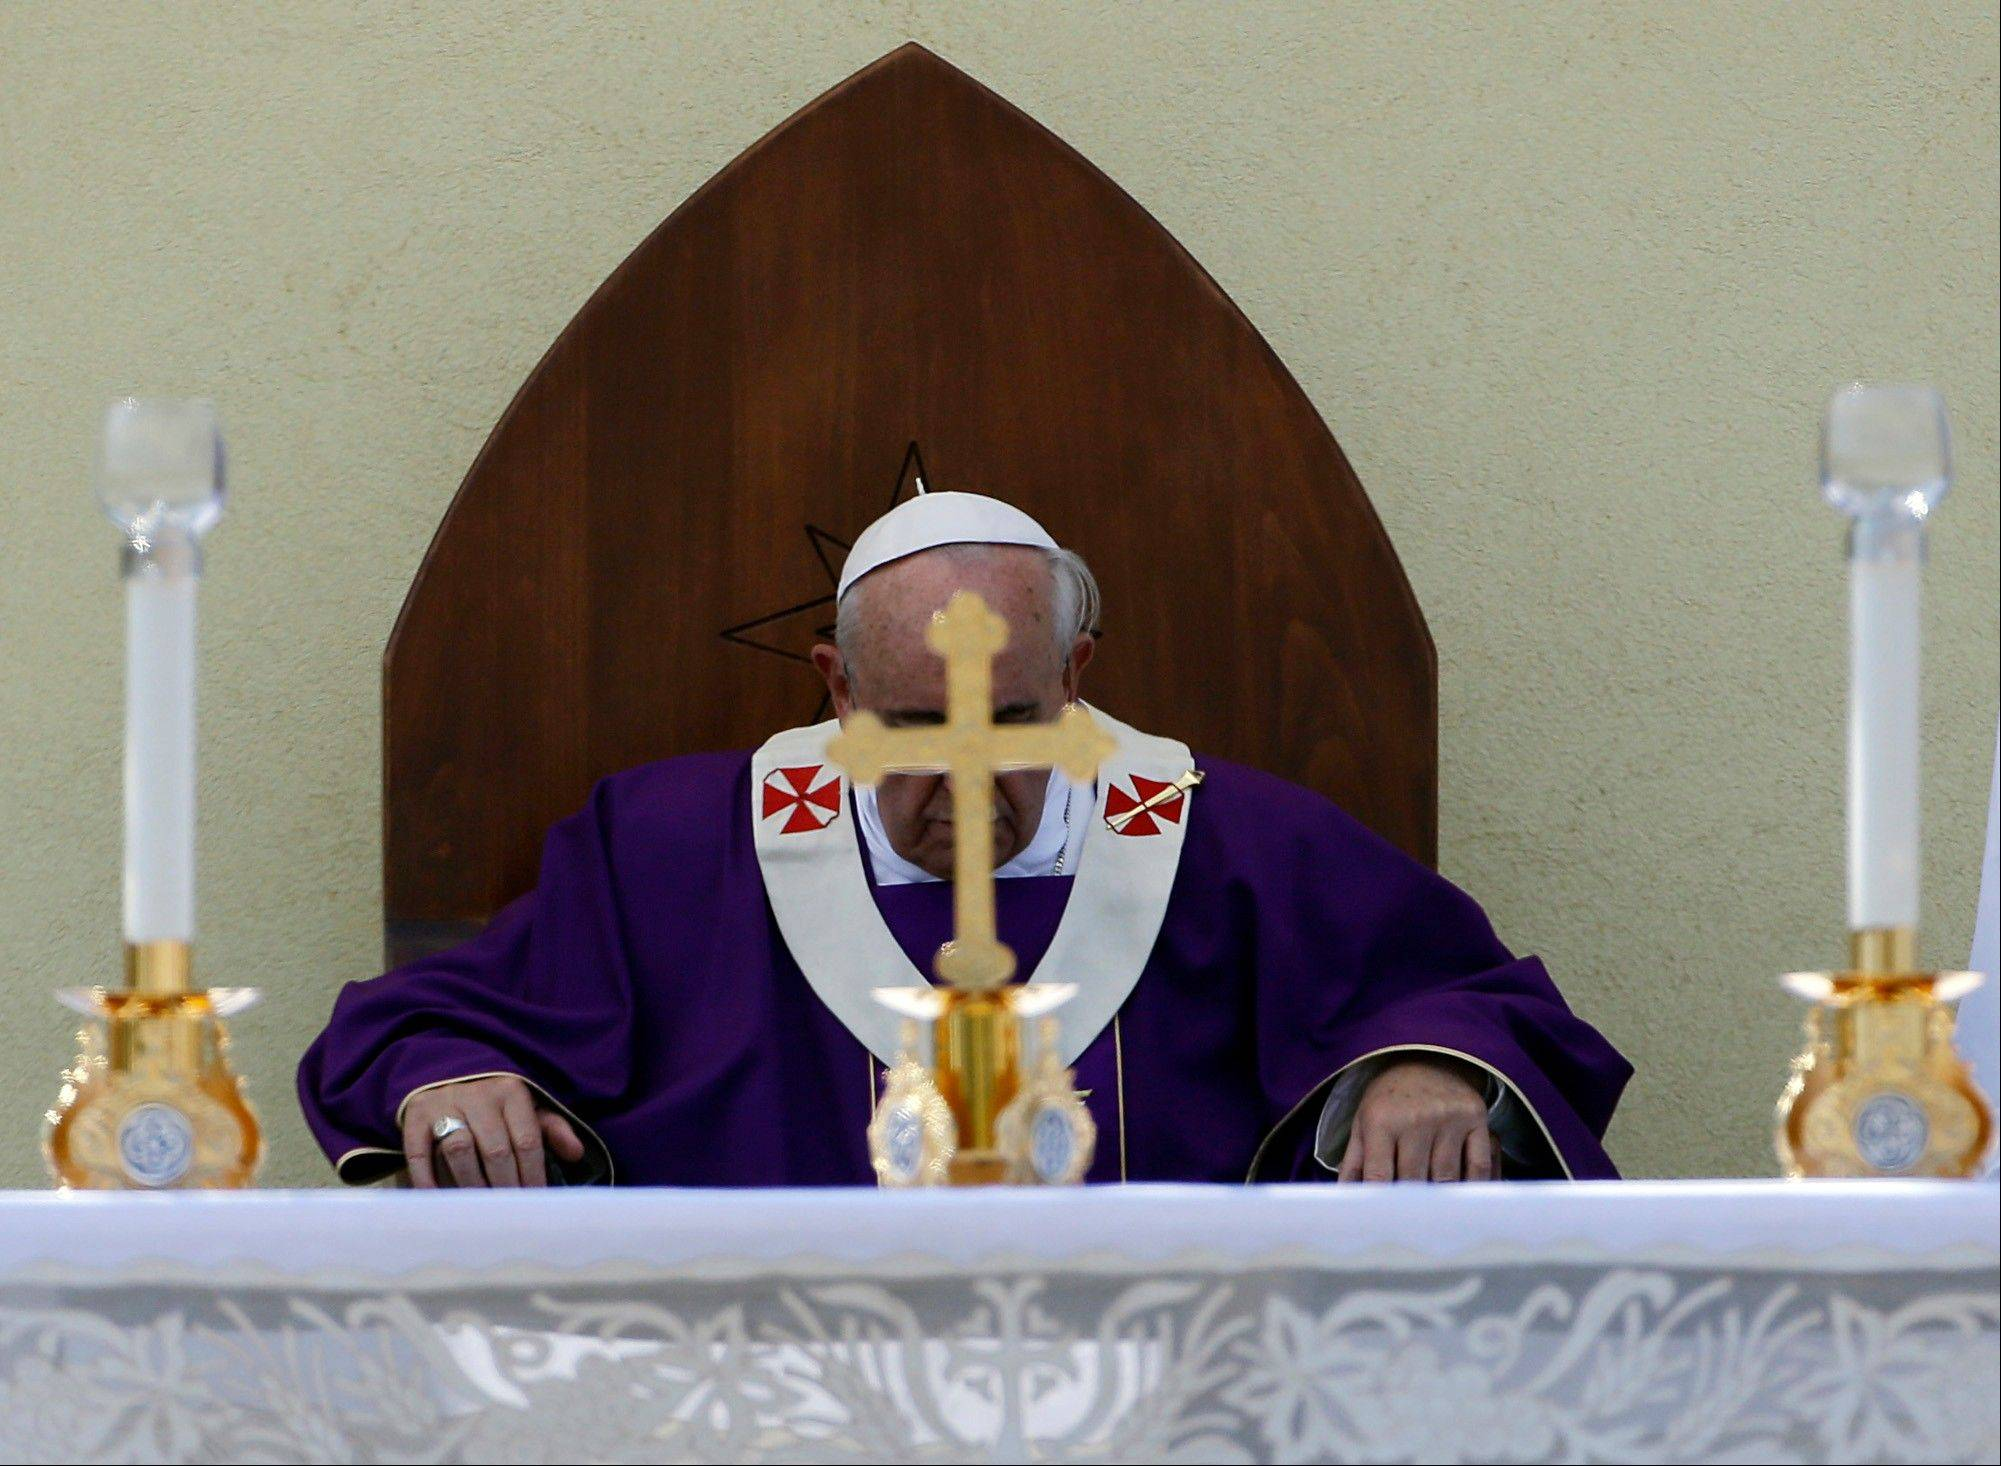 Pope Francis celebrates a mass during his visit to the island of Lampedusa, southern Italy, Monday. Pope Francis traveled Monday to the tiny Sicilian island of Lampedusa to pray for migrants lost at sea, going to the farthest reaches of Italy to throw a wreath of flowers into the sea and celebrate Mass as yet another boatload of Eritrean migrants came ashore.